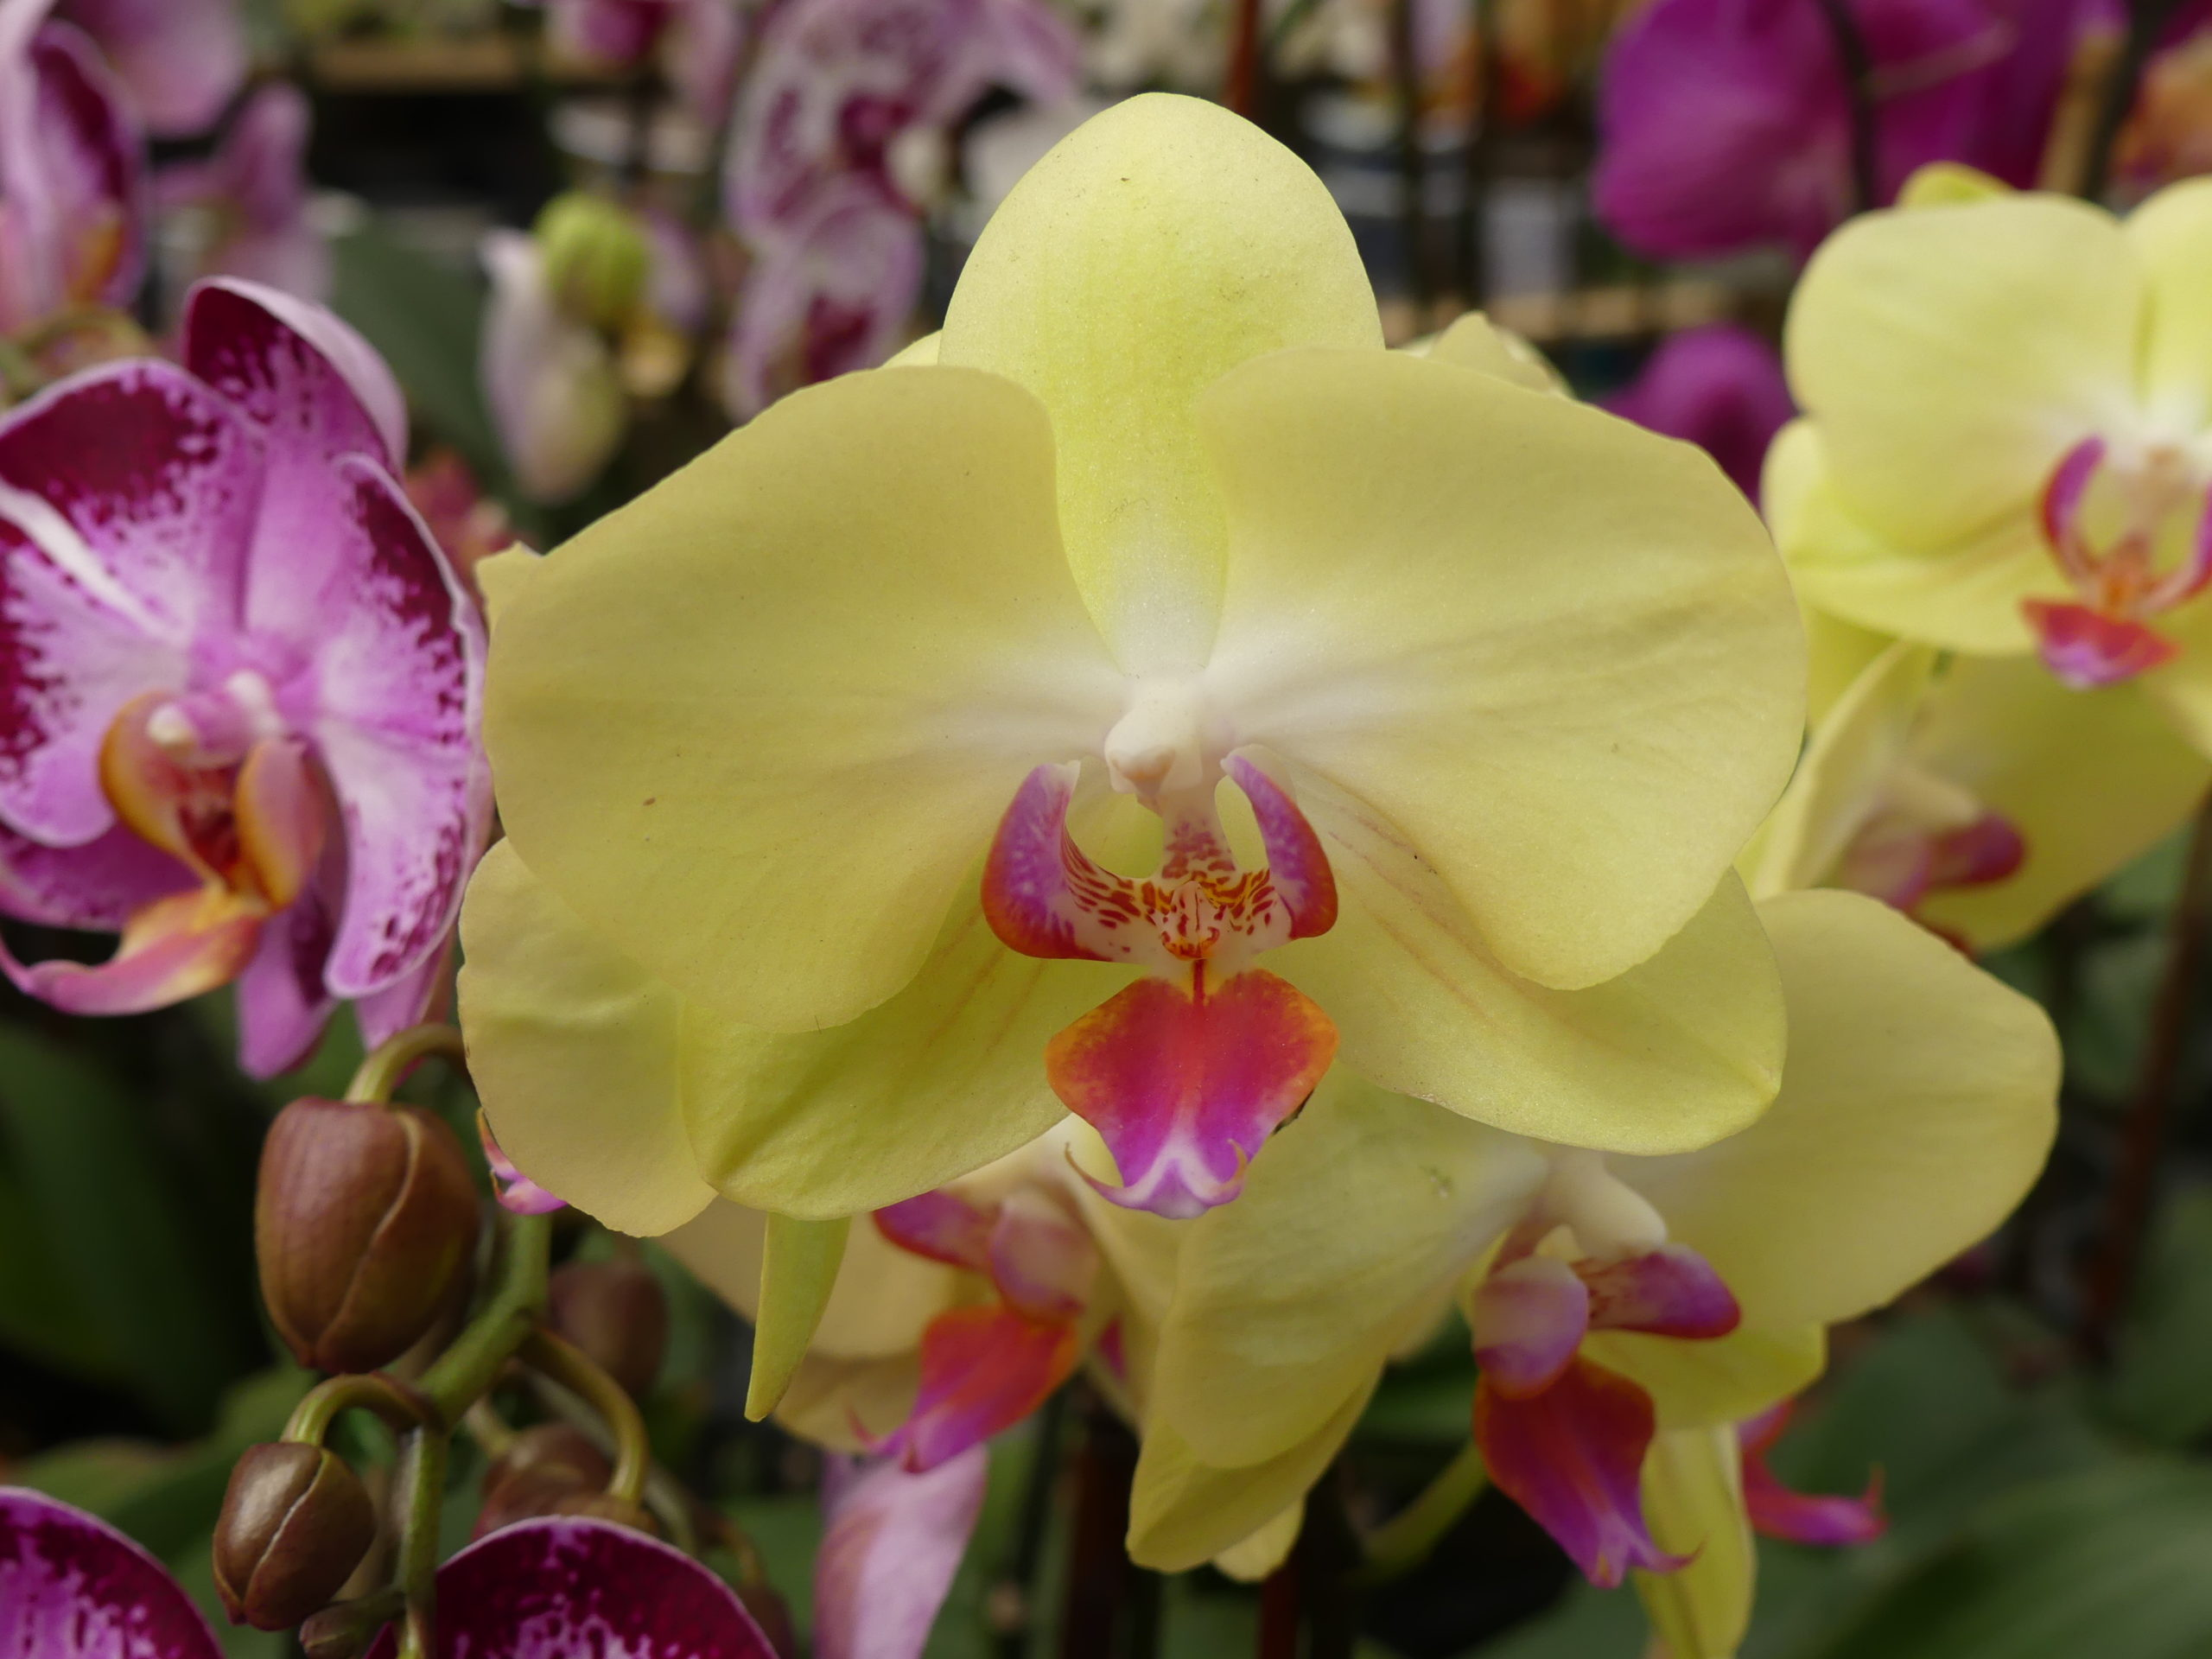 This beautiful yellow Phalaenopsis orchid could be blooming in your home, now. This is one of the easier orchids, and once you get the hang of it the flowers last for months.